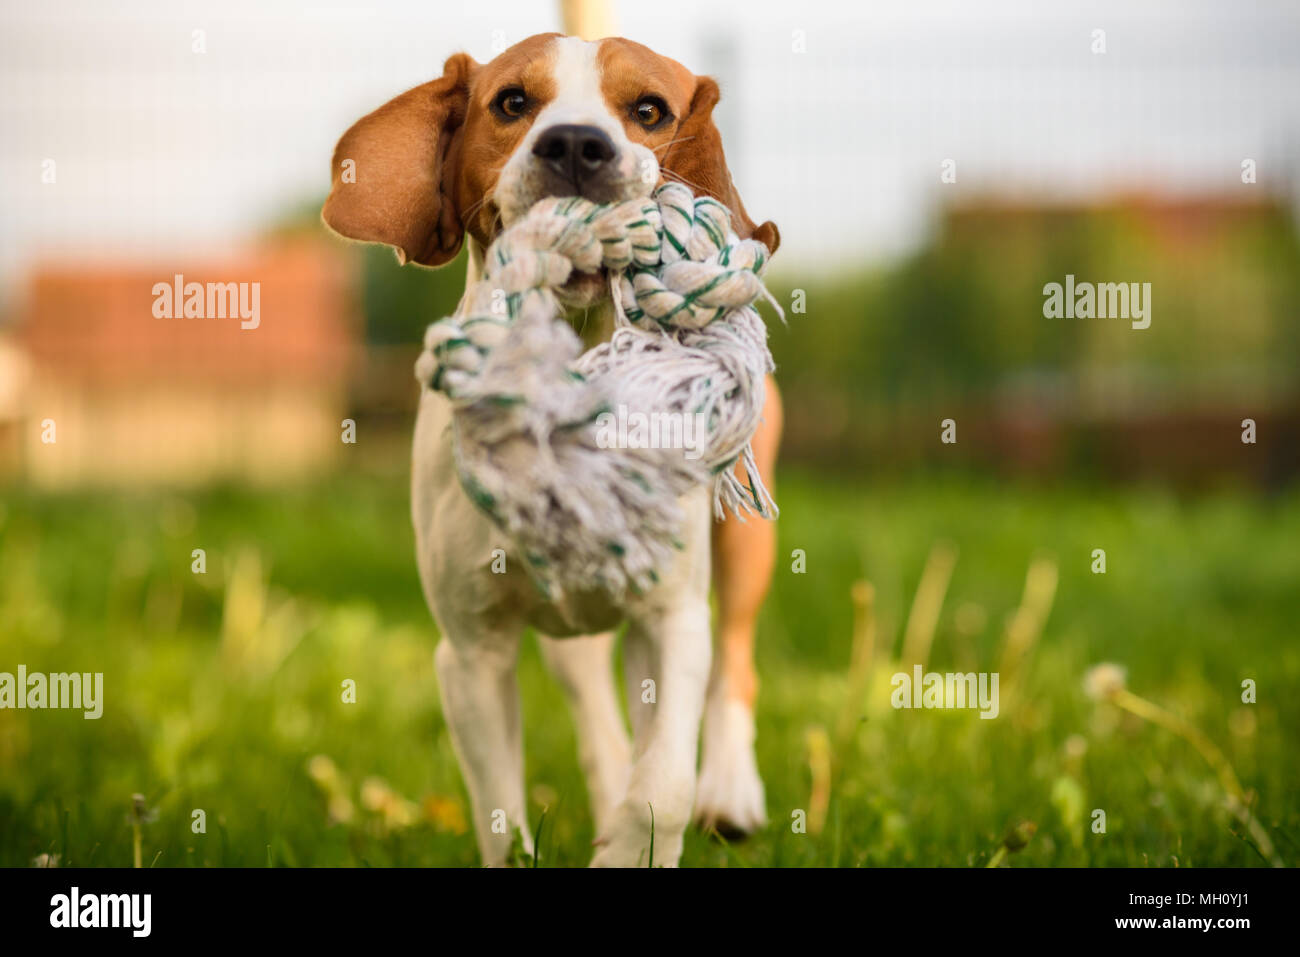 Beagle dog jumping and running with a toy outdoors towards the camera - Stock Image